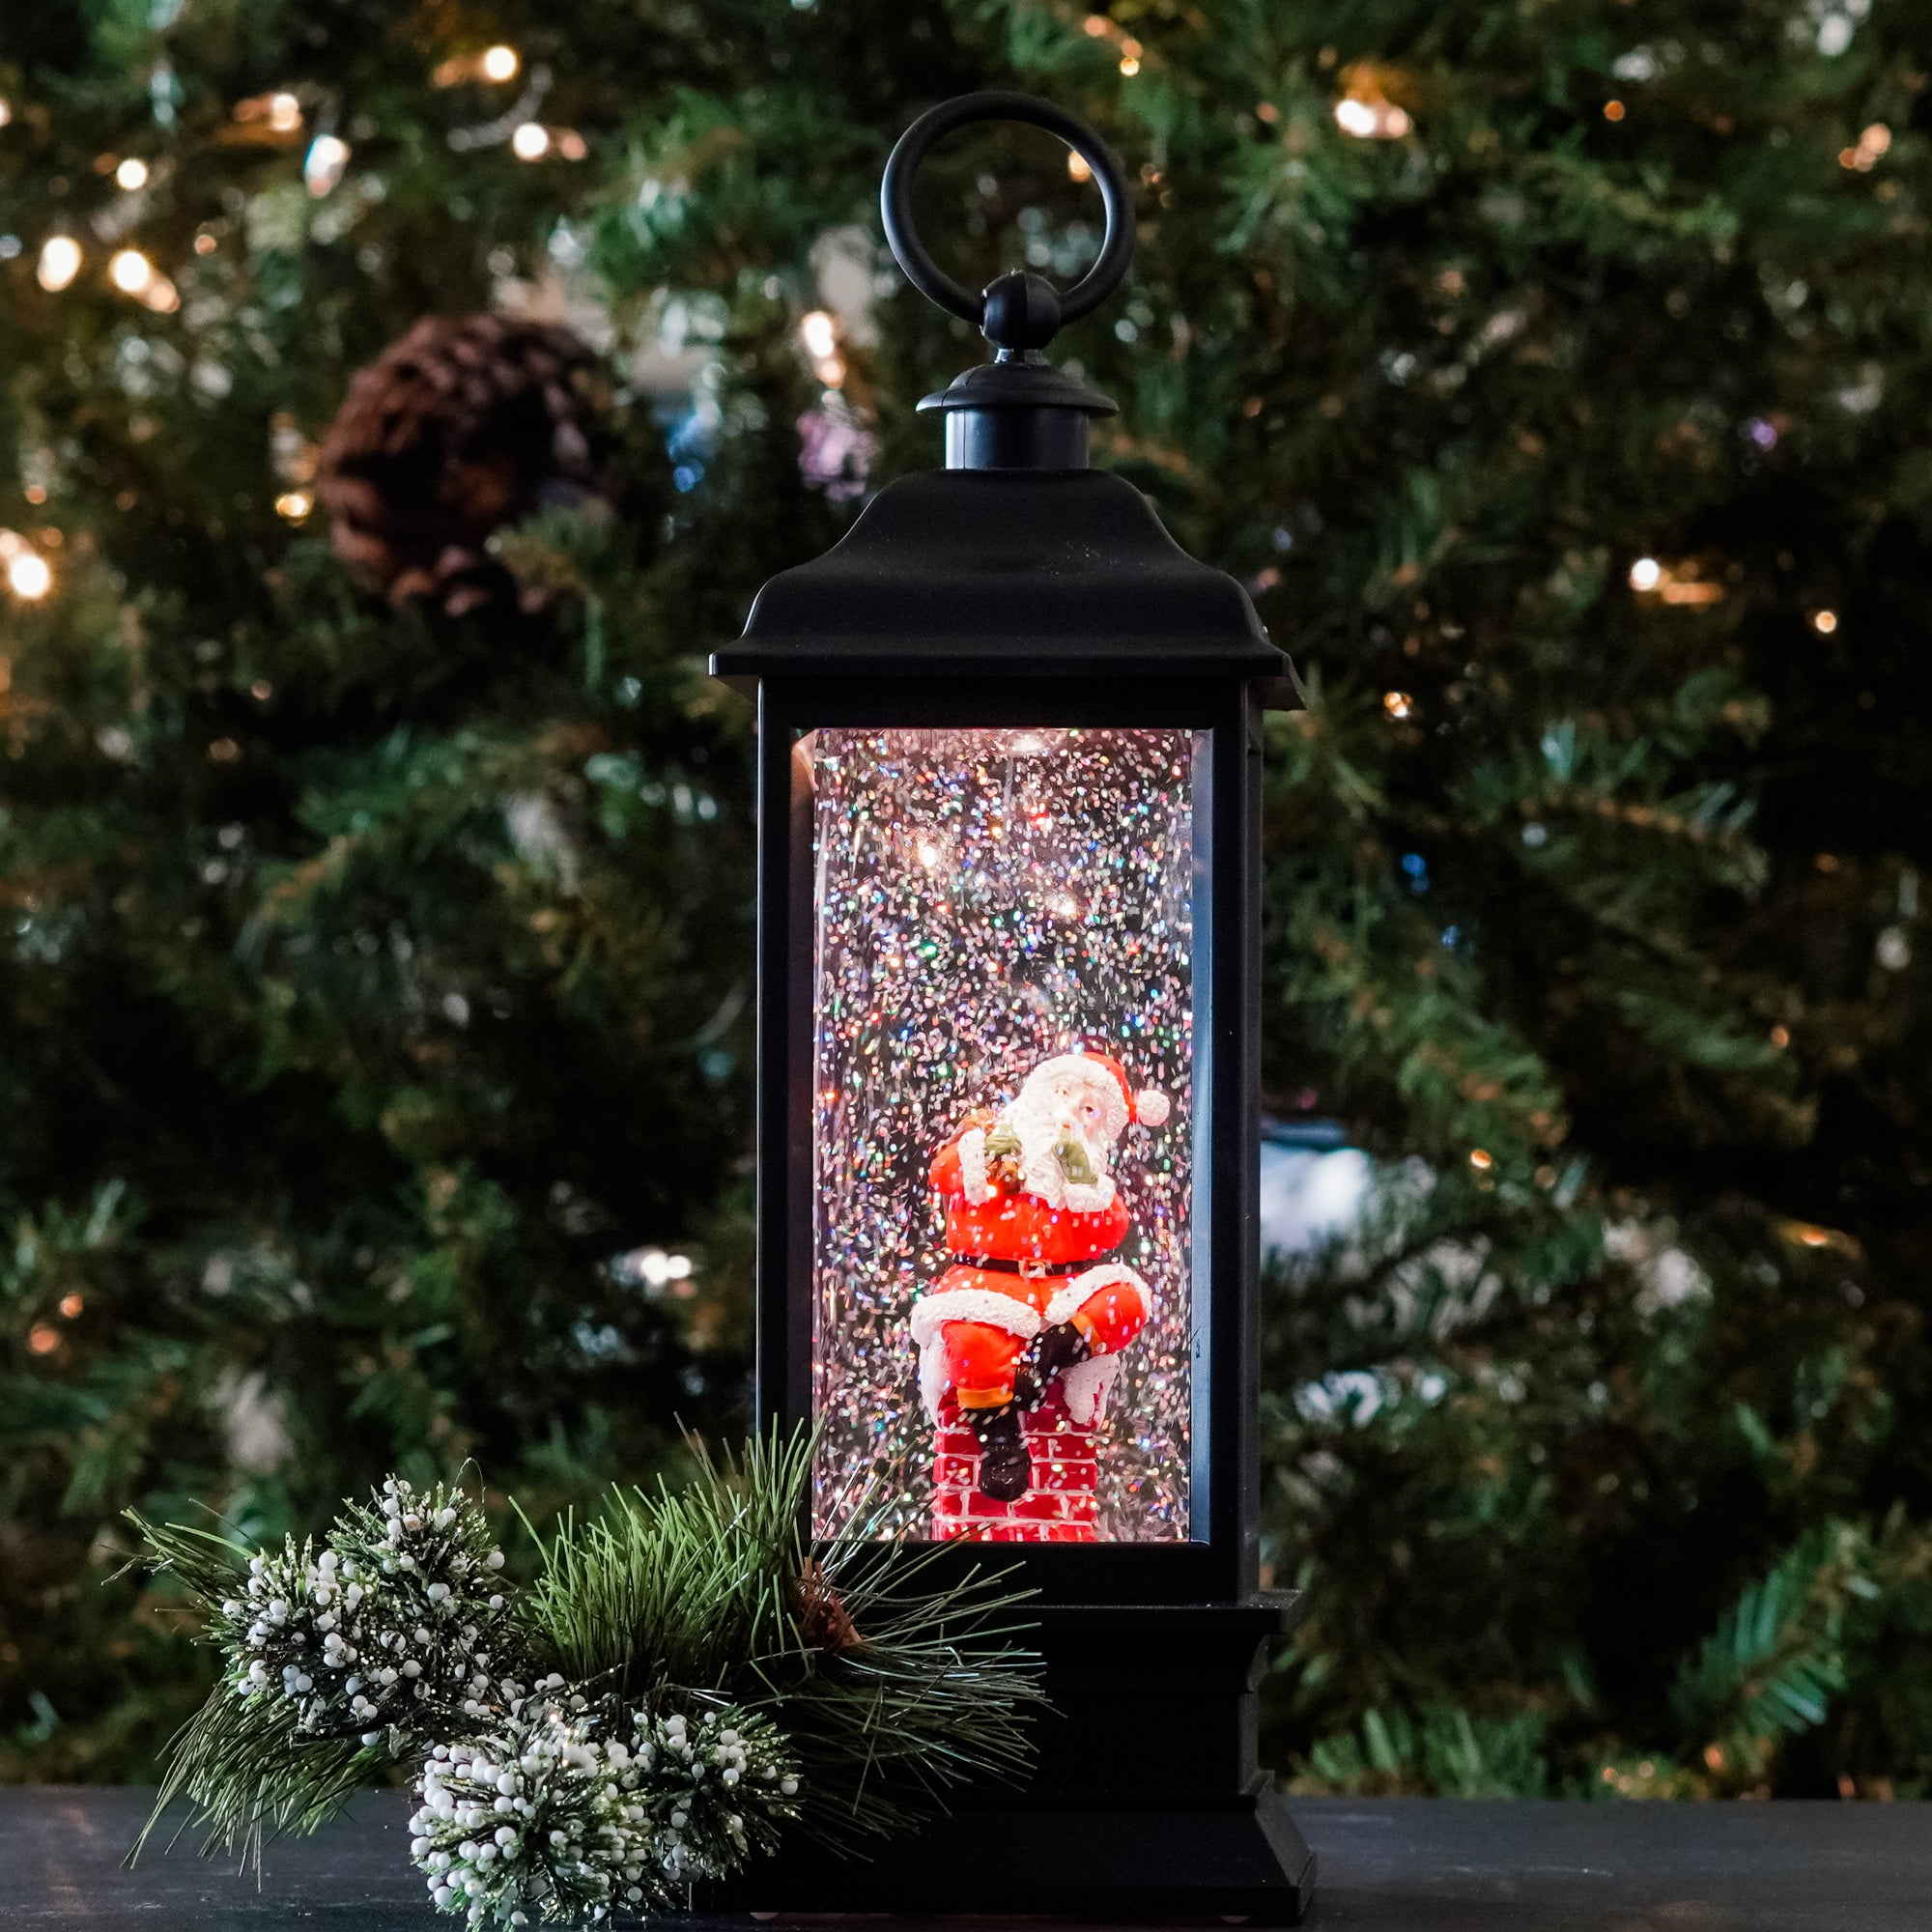 Santa's getting ready to visit all. Inside this LED water lantern. Santa is holding his bag of toys and gifts ready to come down the chimney with swirling glitter, when turned on a warm LED shines down on the figurine to give our water lantern a whimsical look for the Christmas Holiday season. NEW for 2020!